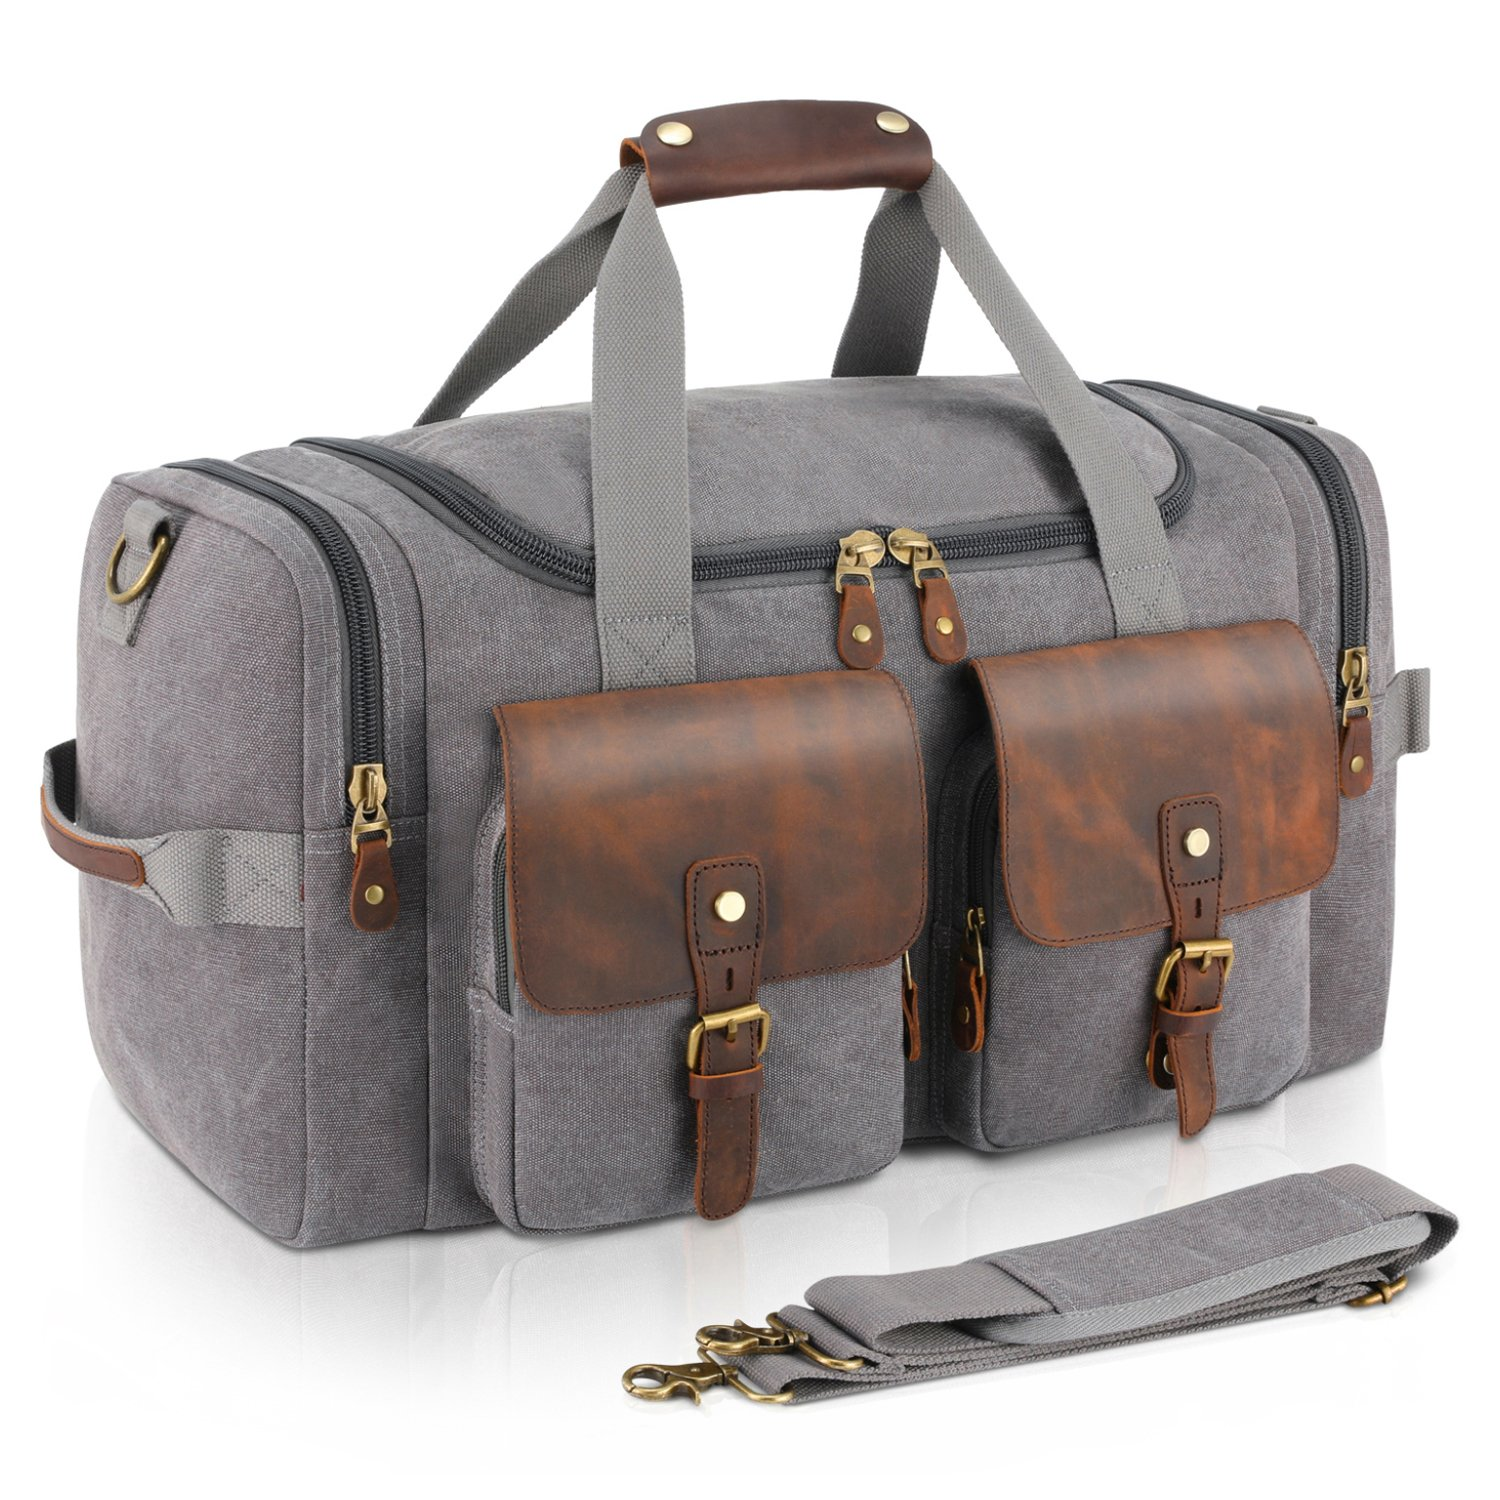 Plambag Leather Canvas Duffle Bag Oversized Overnight Weekend Luggage Bag(Gray)